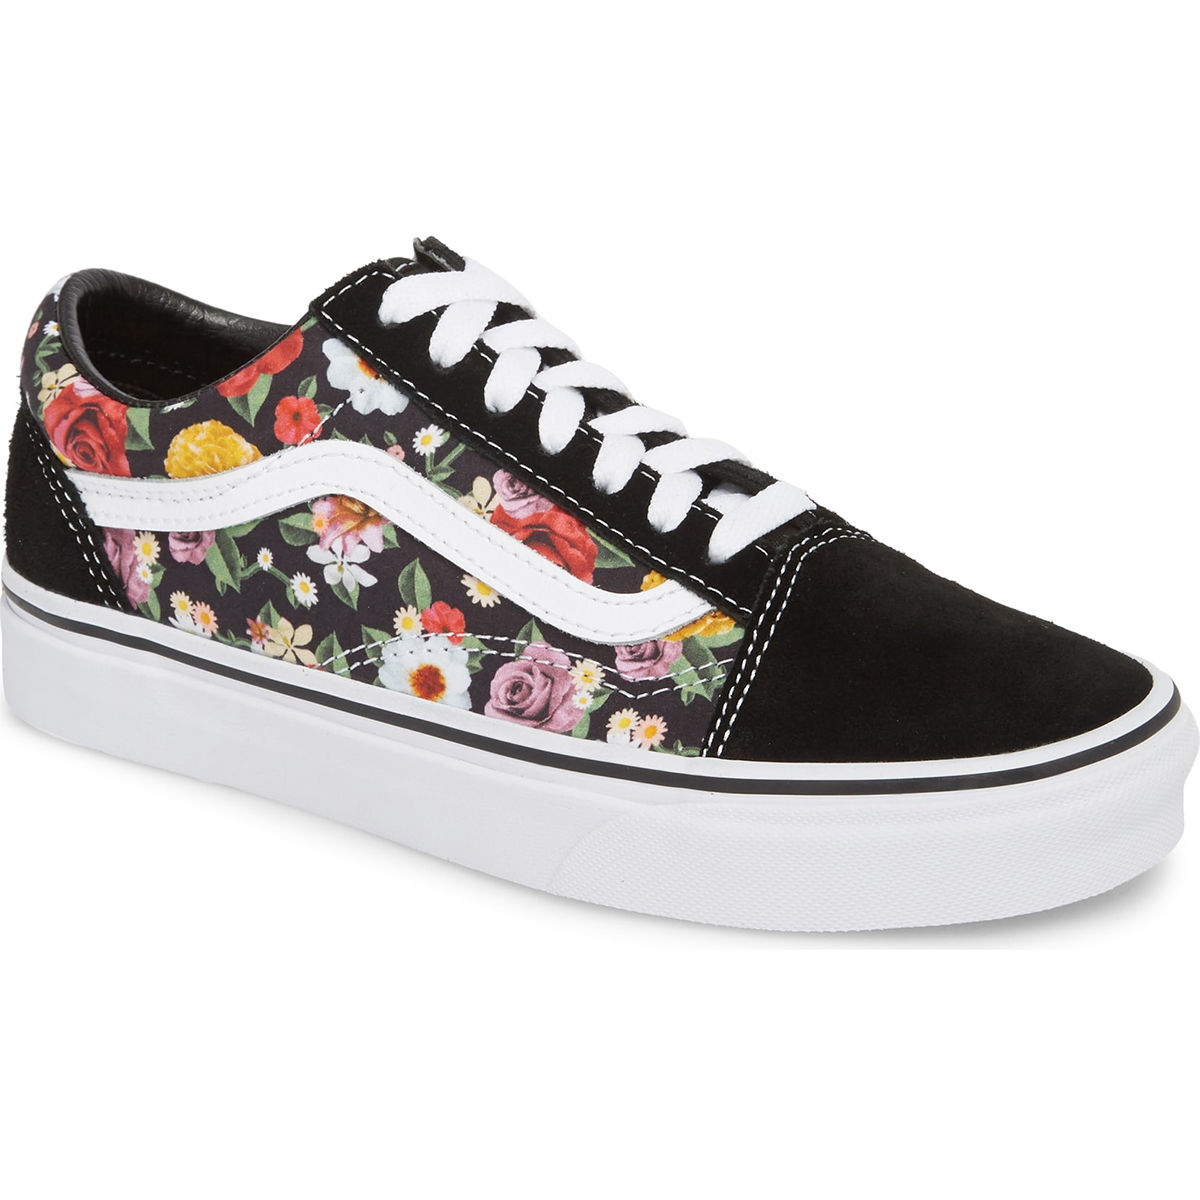 Vans Unisex Old Skool Lux Floral Sneakers - Black, 7.5